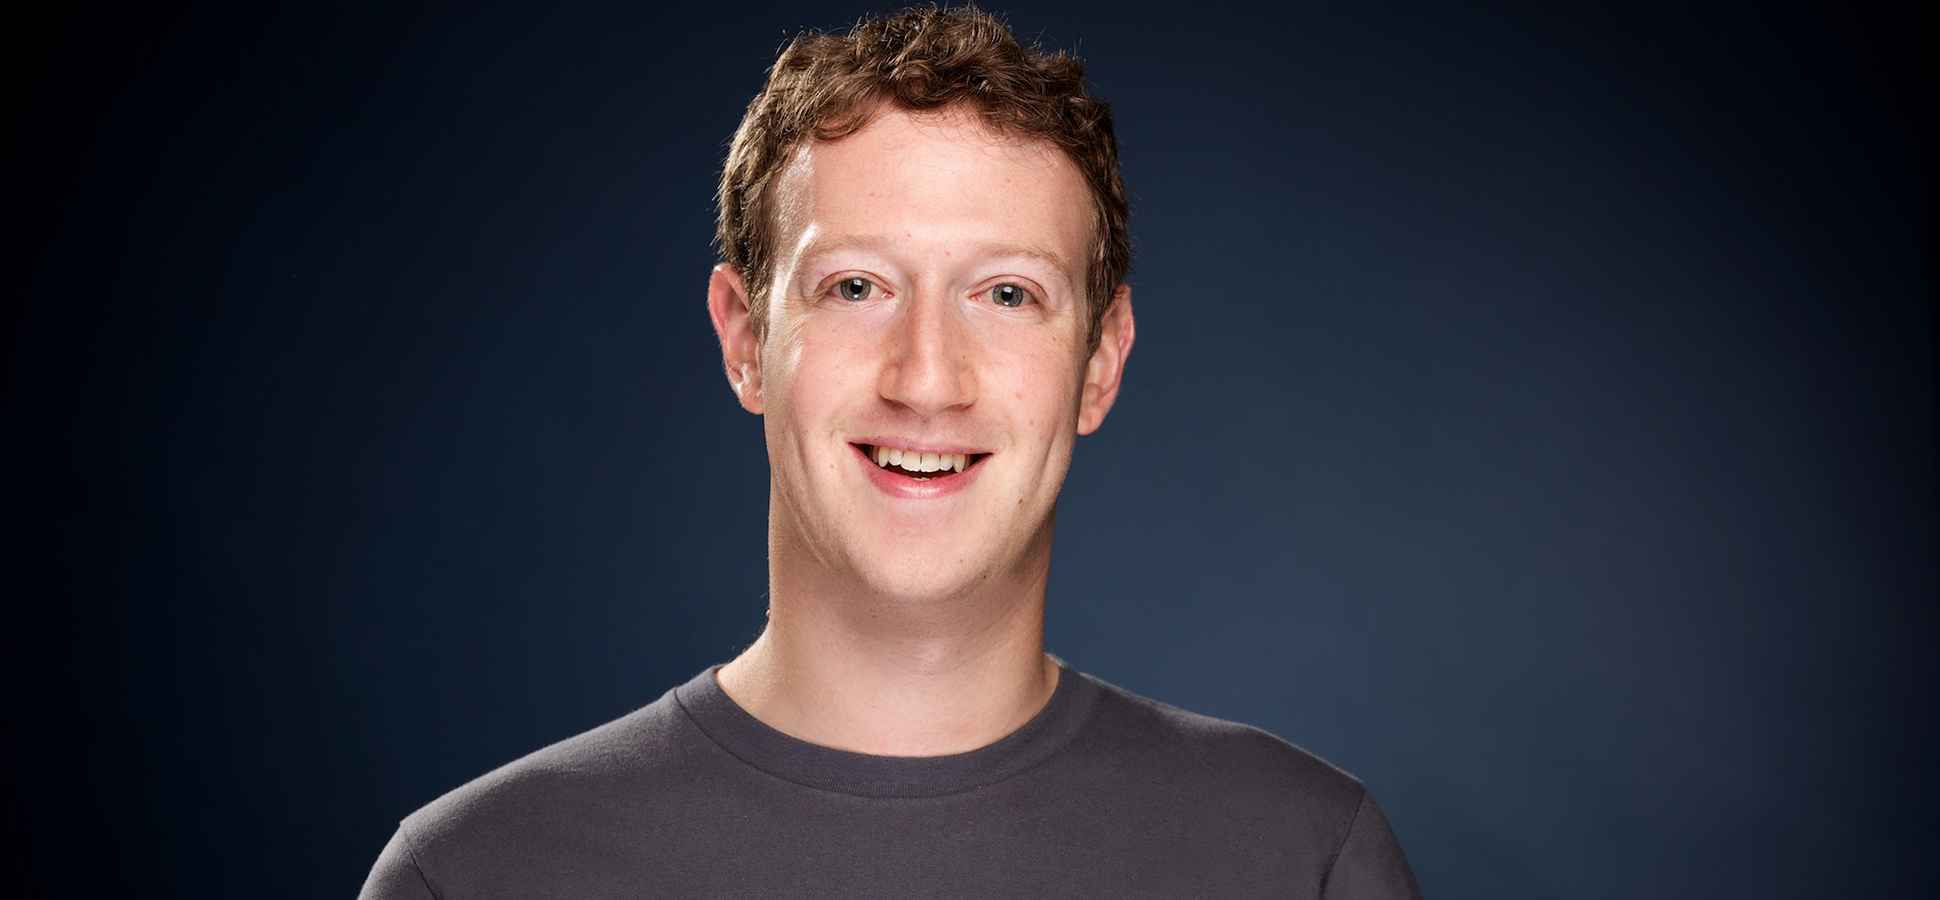 2 Tricks Mark Zuckerberg Uses to Make Meetings Much More Efficient